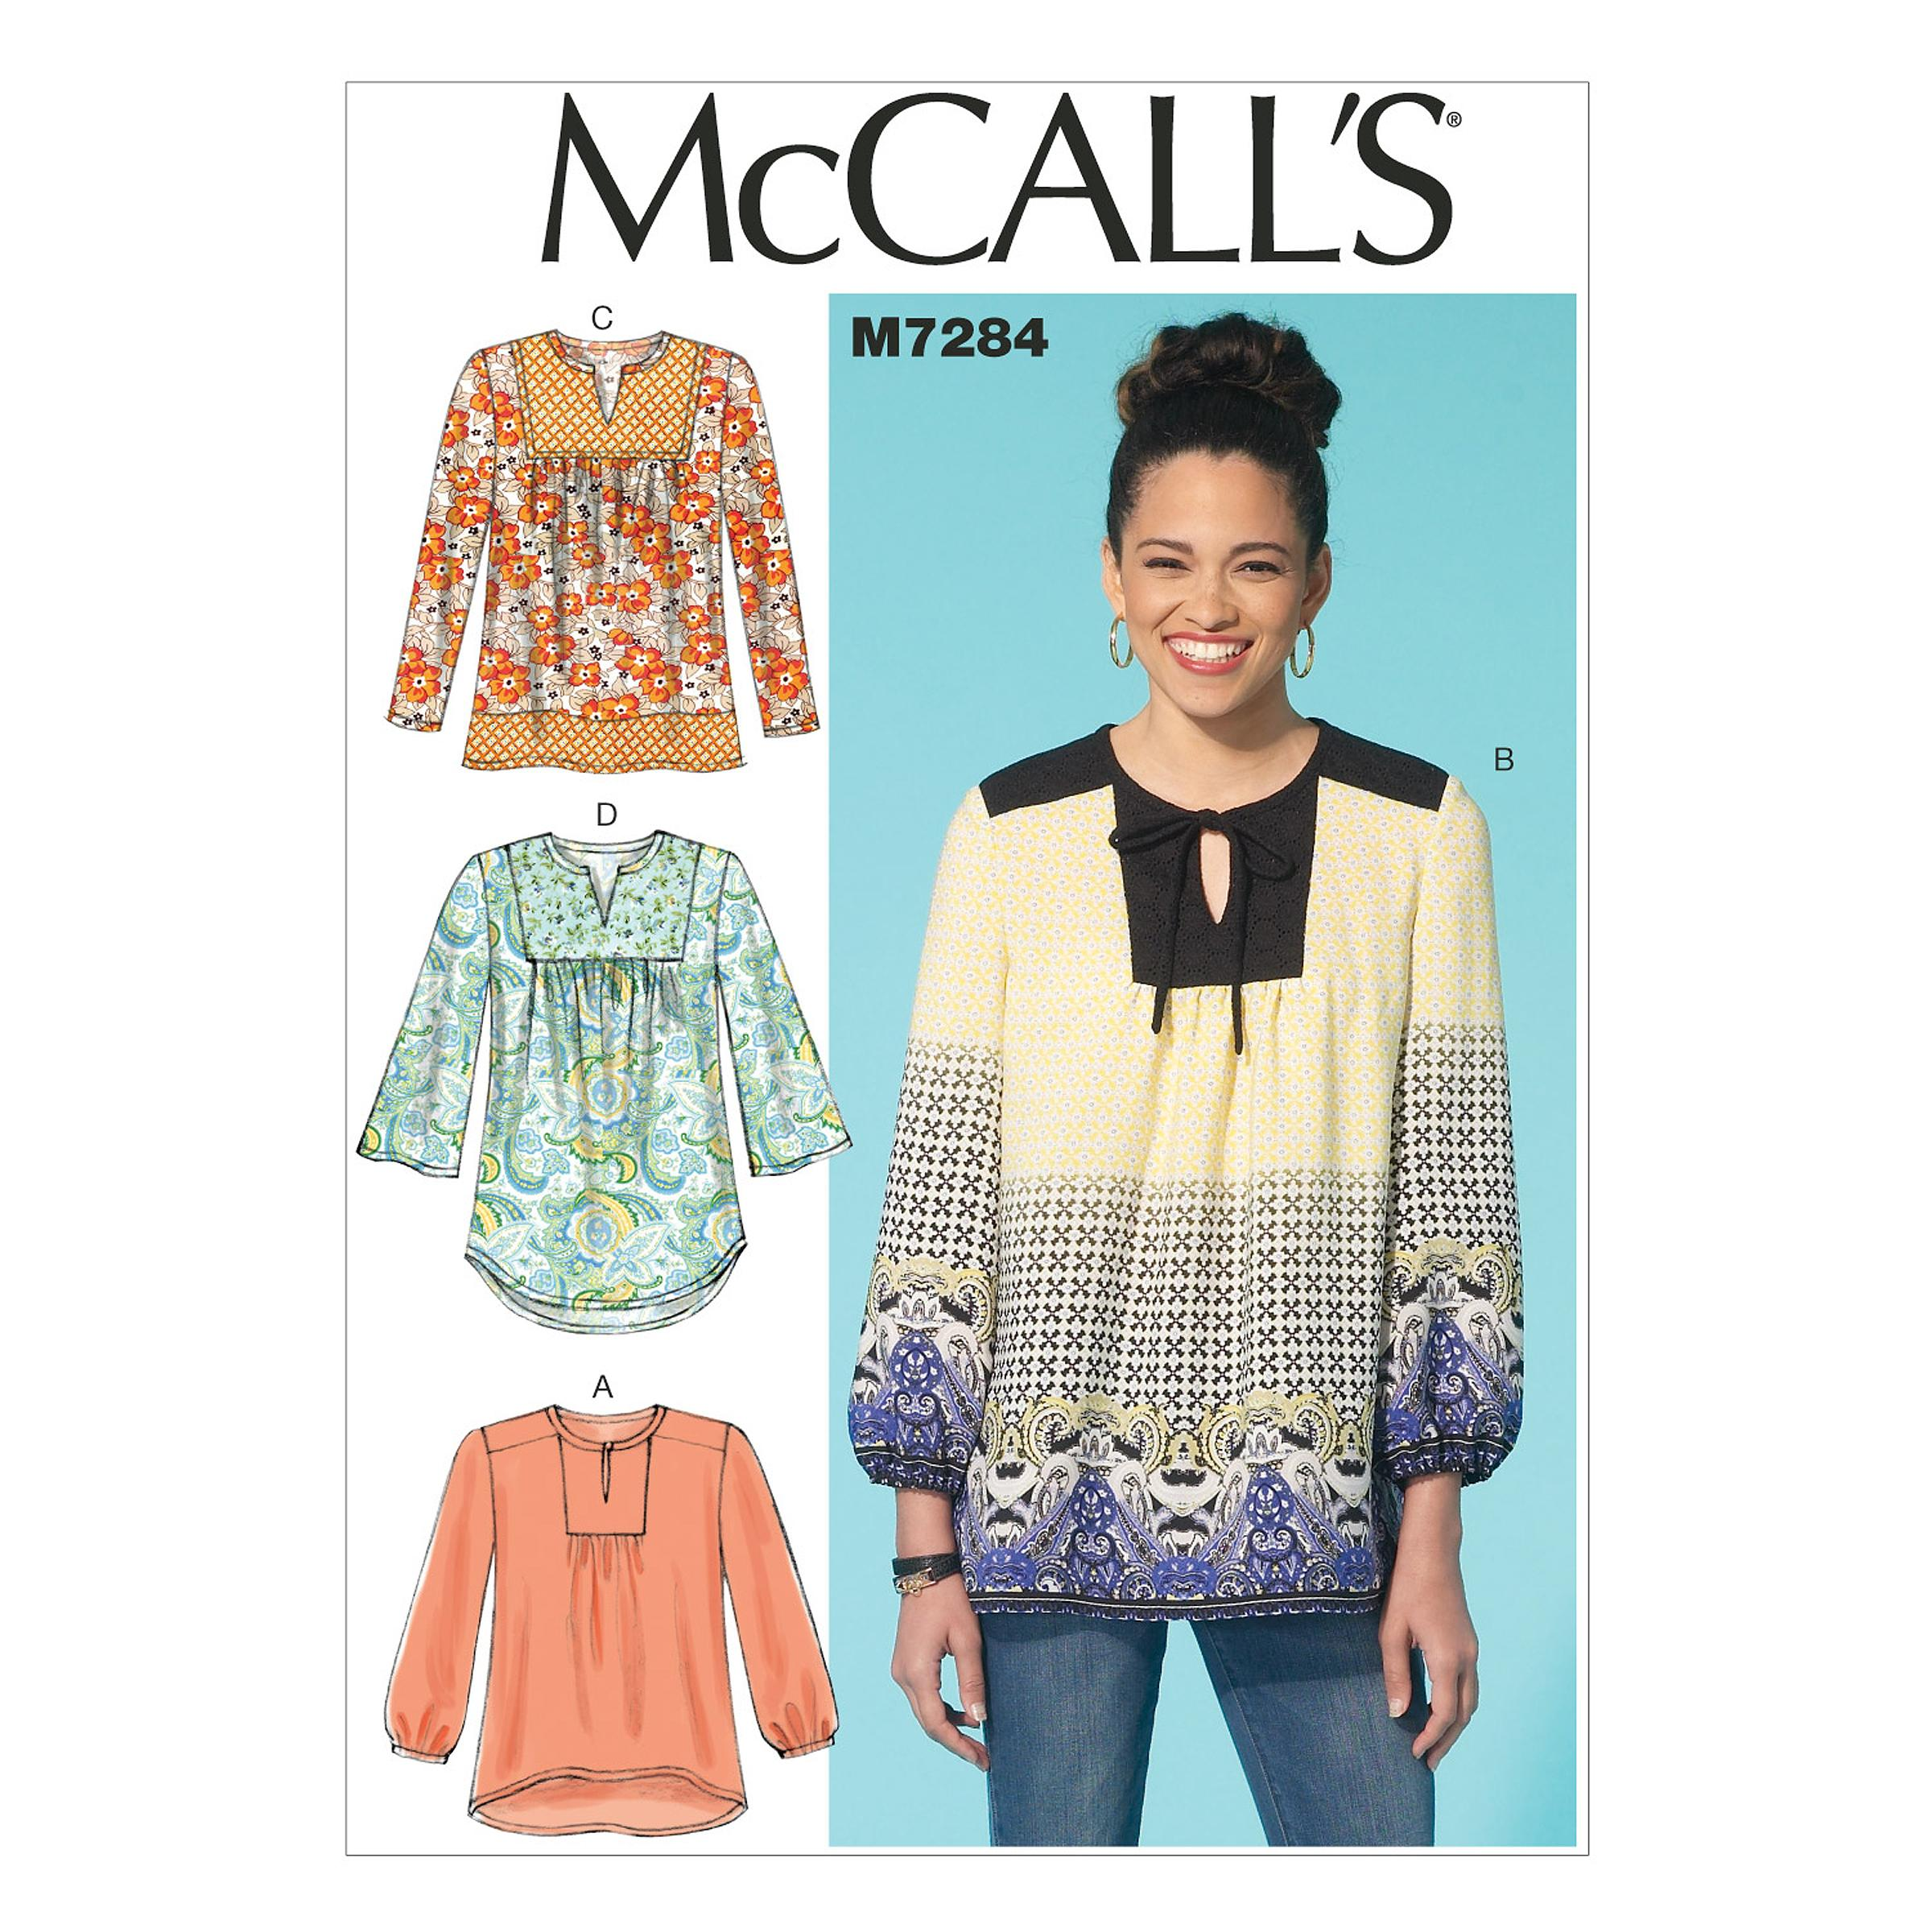 McCalls M7284 Tops/Tunics